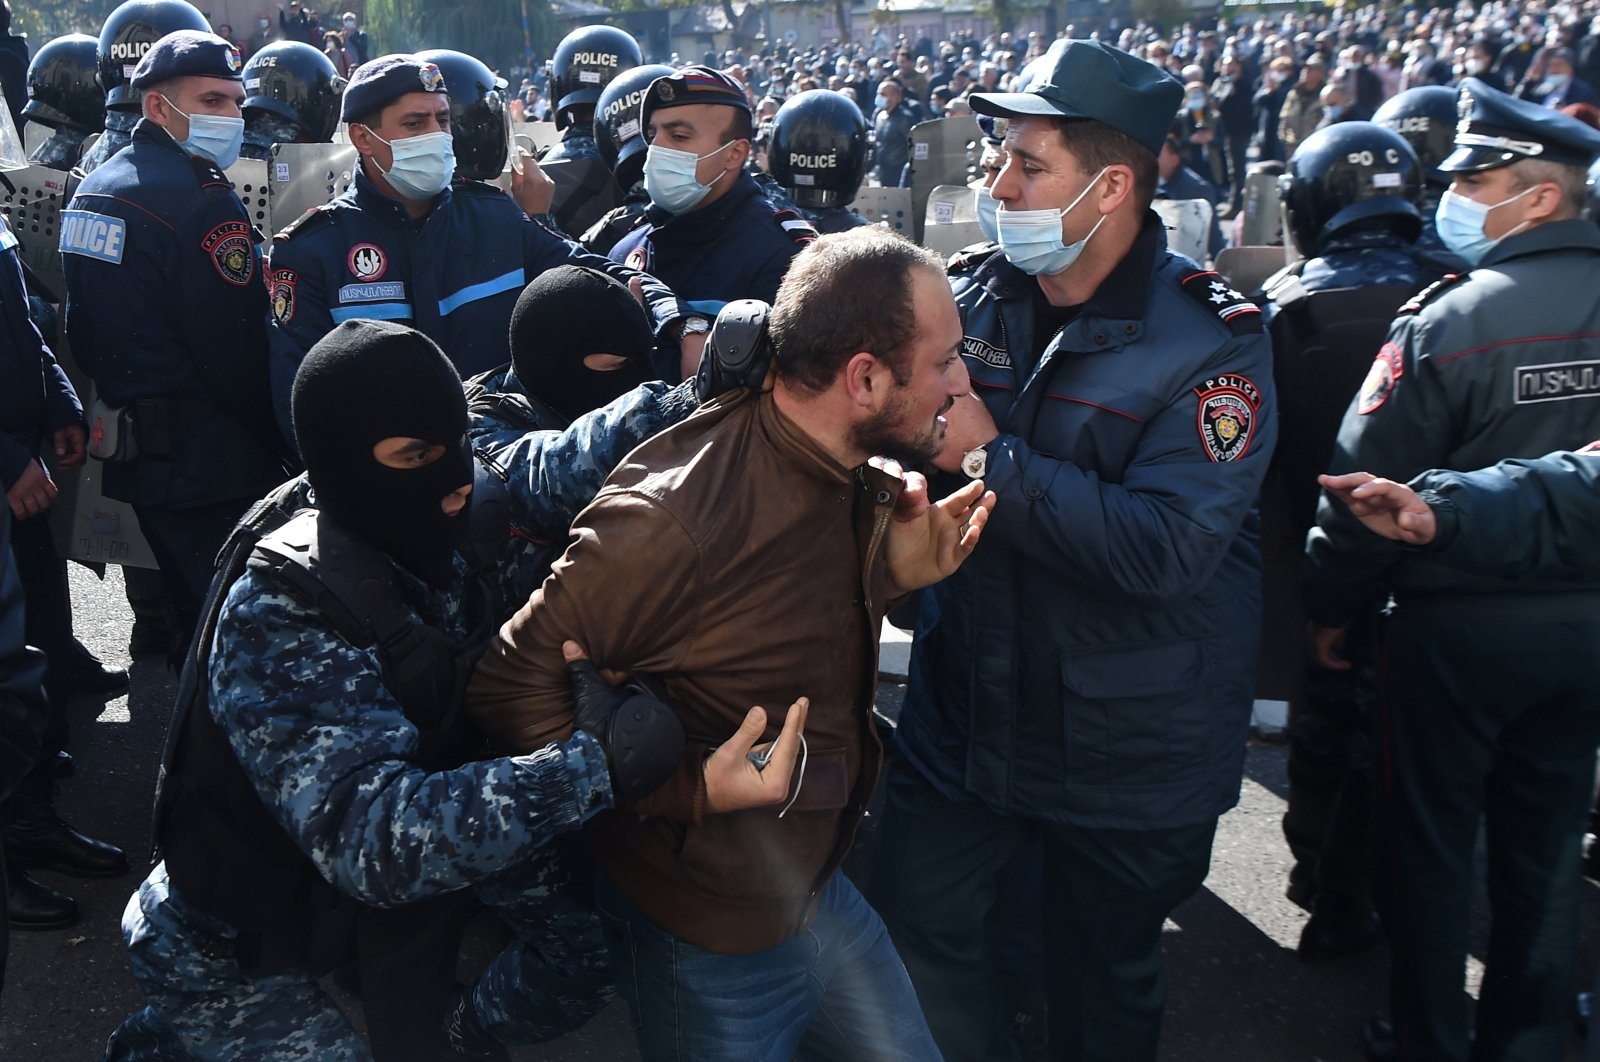 A man is taken away by law enforcement officers during an opposition rally to demand the resignation of Armenian Prime Minister Nikol Pashinyan following the signing of a deal to end the military conflict over the Nagorno-Karabakh region, in Yerevan, Armenia Nov. 11, 2020. (REUTERS)